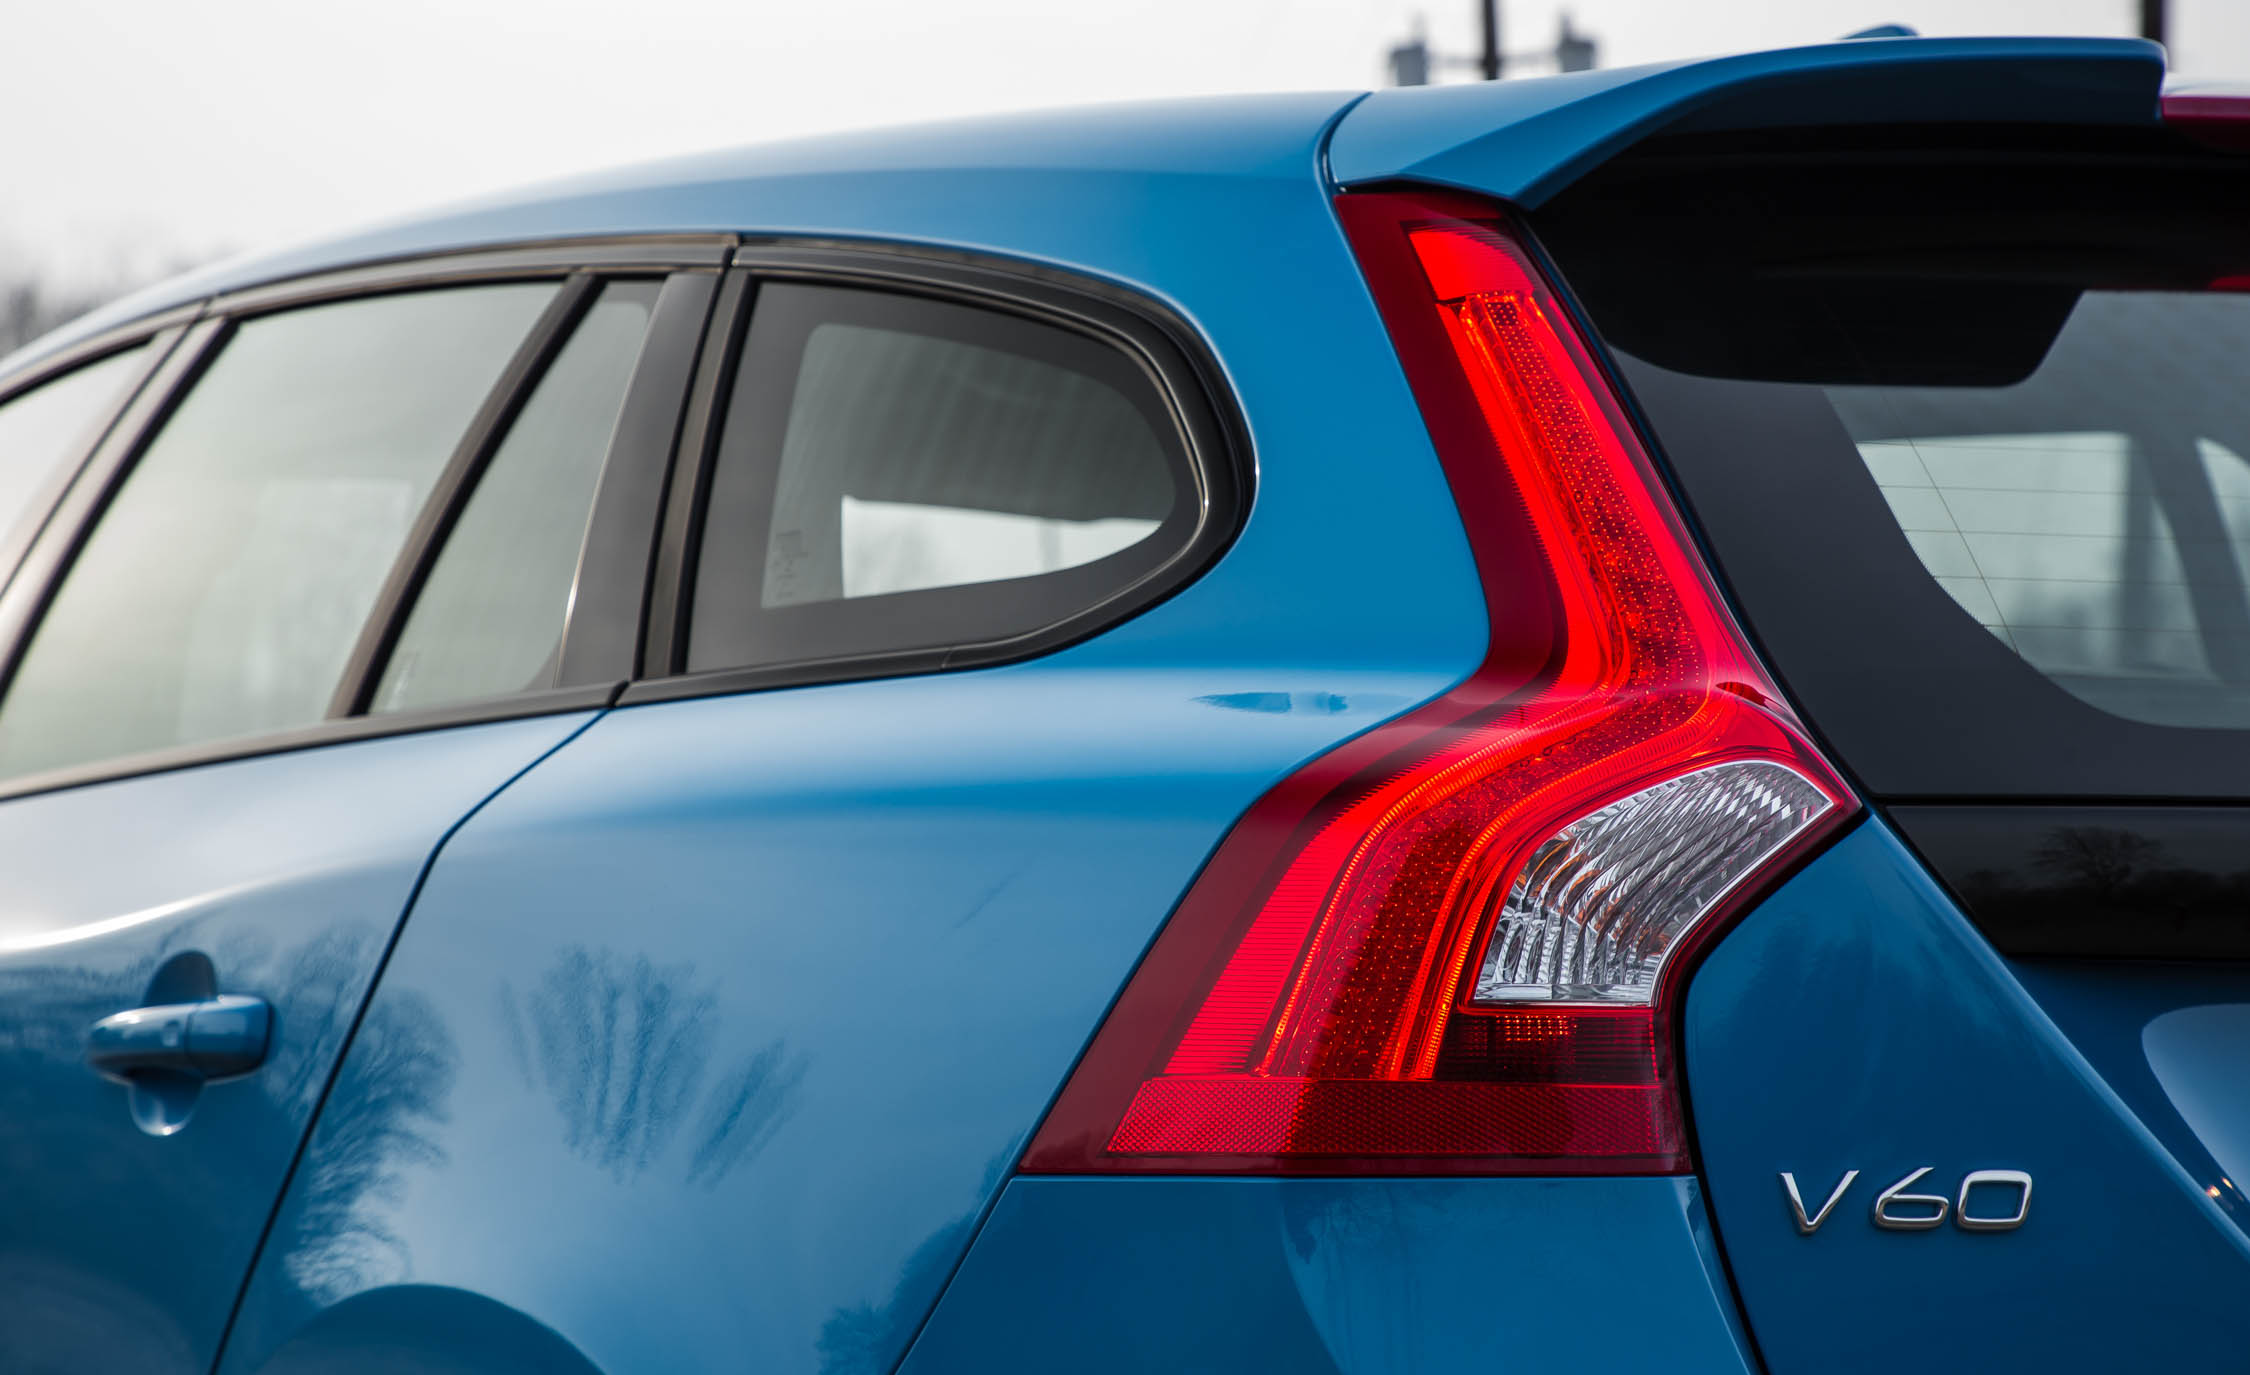 2017 Volvo V60 Polestar Exterior View Taillight (View 24 of 53)